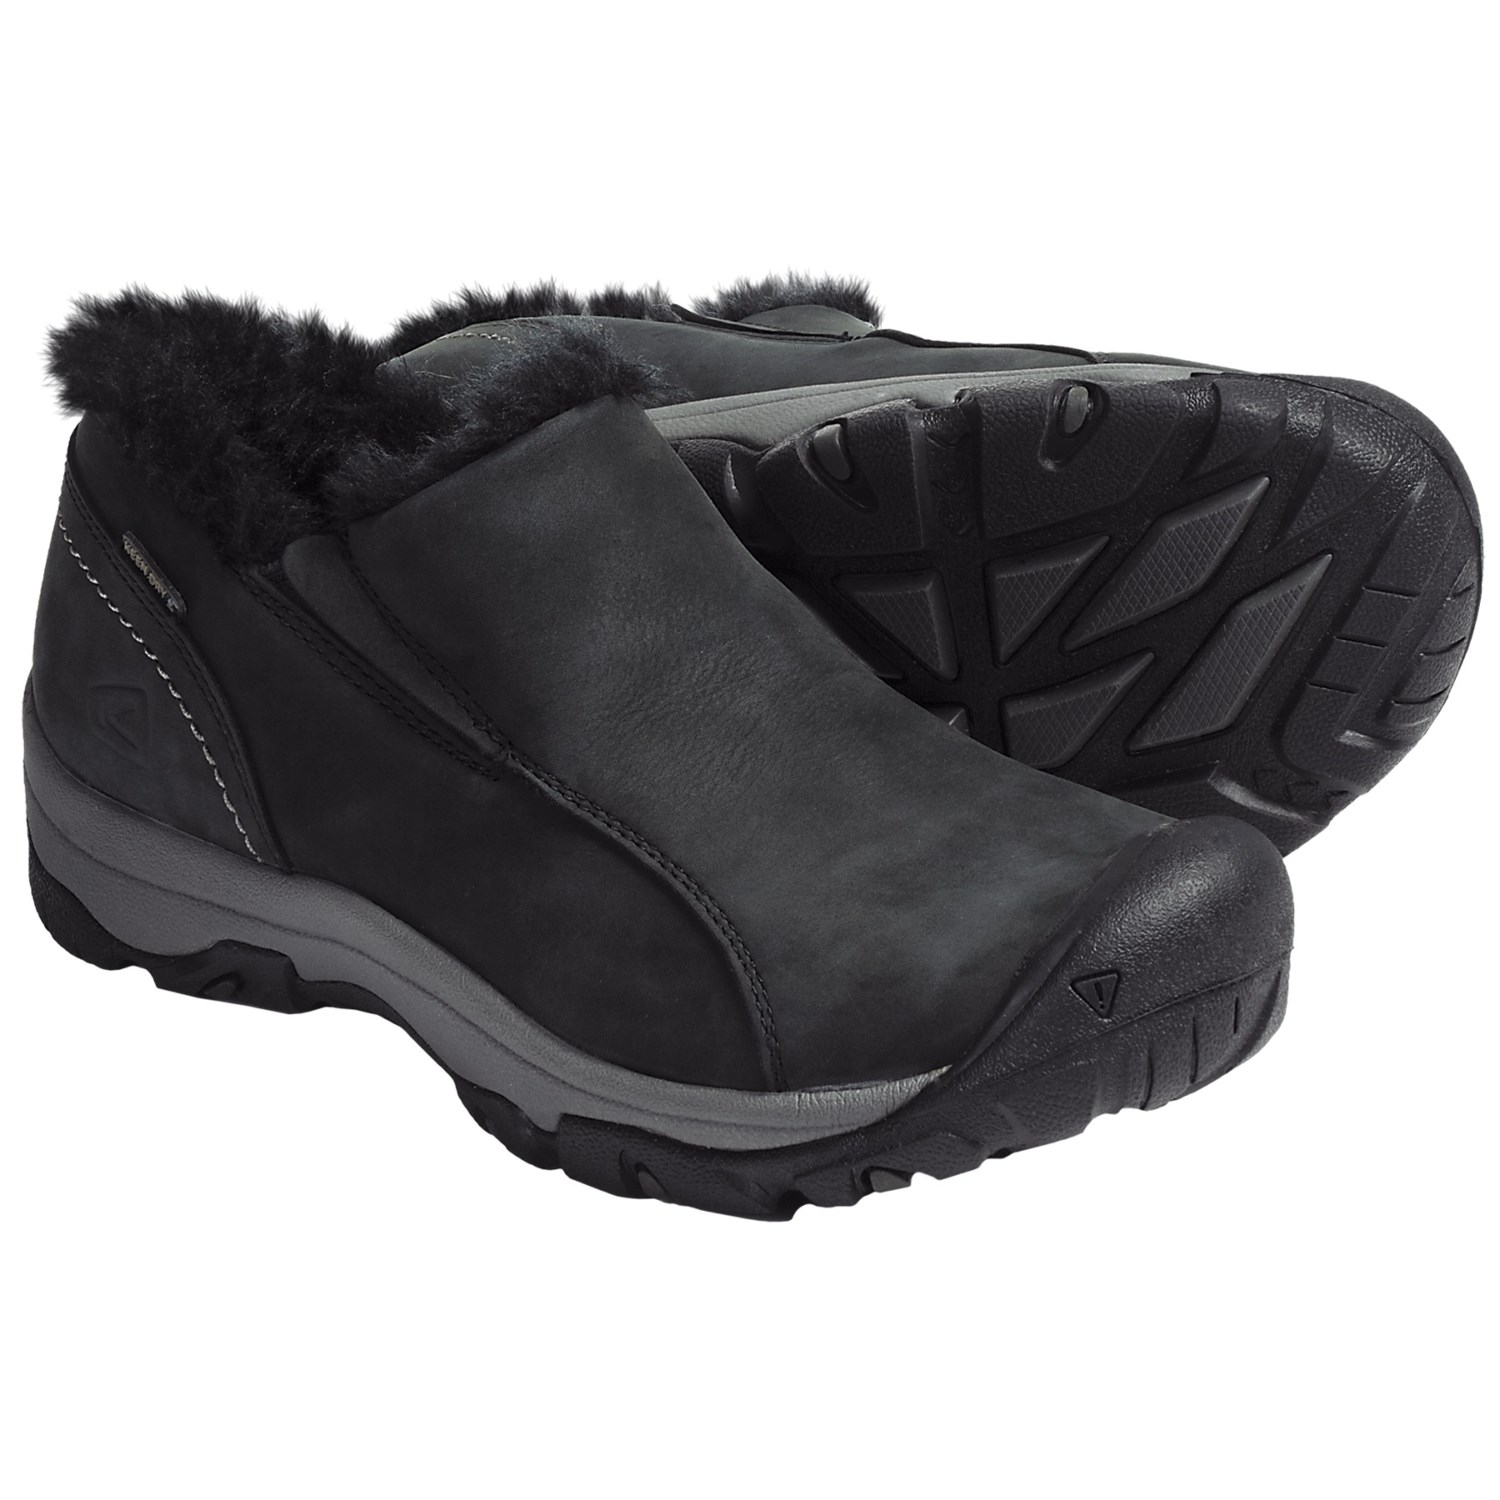 Model For The Colder Time, The Shoes Are Outstanding For Prolonged Walks Eight Merrell Womens All Out Bold MaryJane SlipOn Going For Walks Shoe Merell Can Be Viewed As A Quality Model That Delivers Fashionable And Purposeful Shoes Their